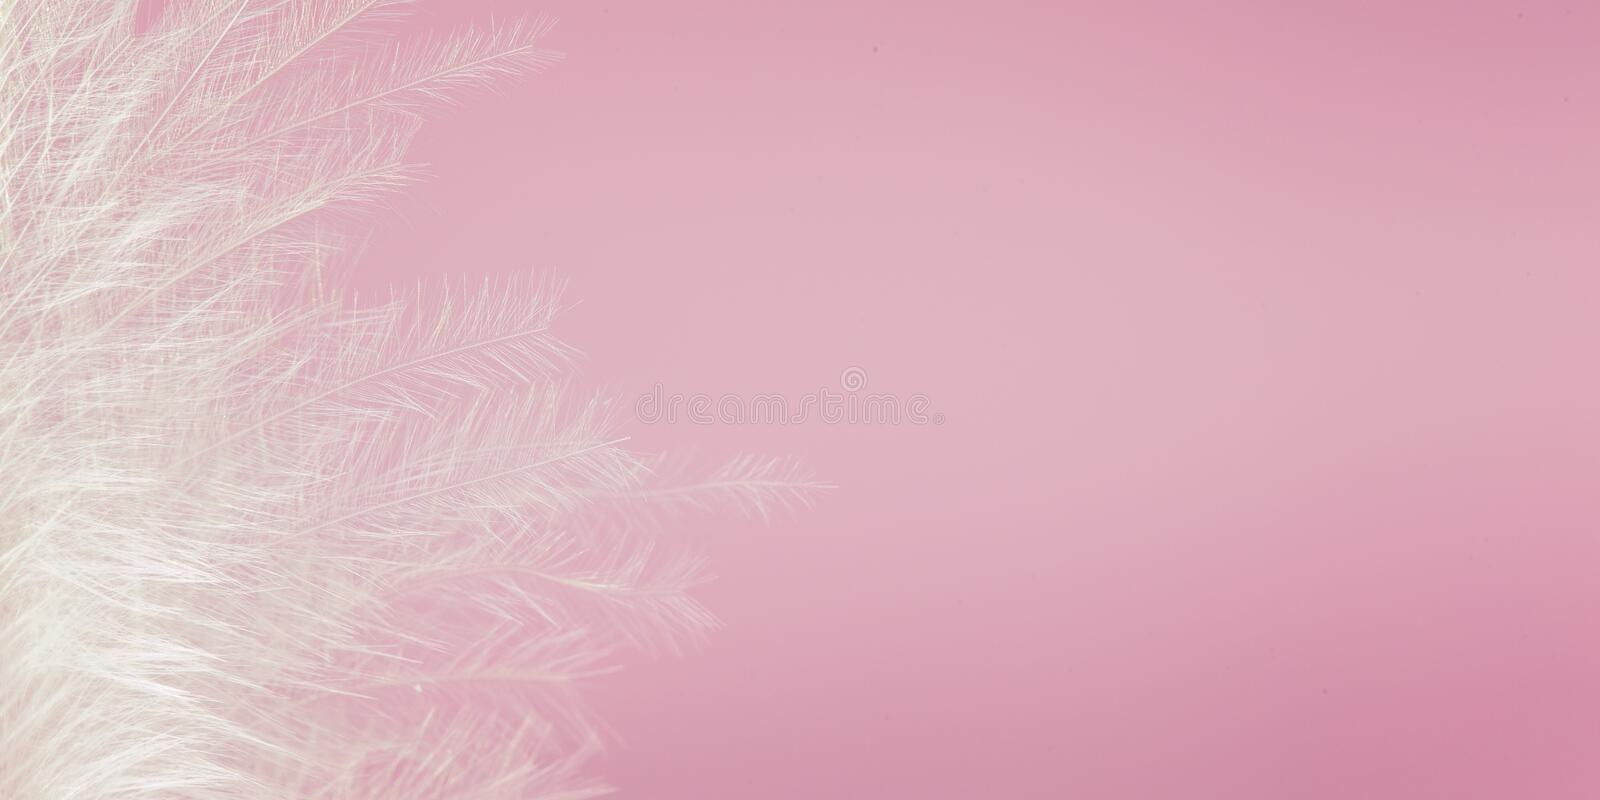 Download White Feather Of Bird On Pink Background Soft Vintage Color Texture Banner